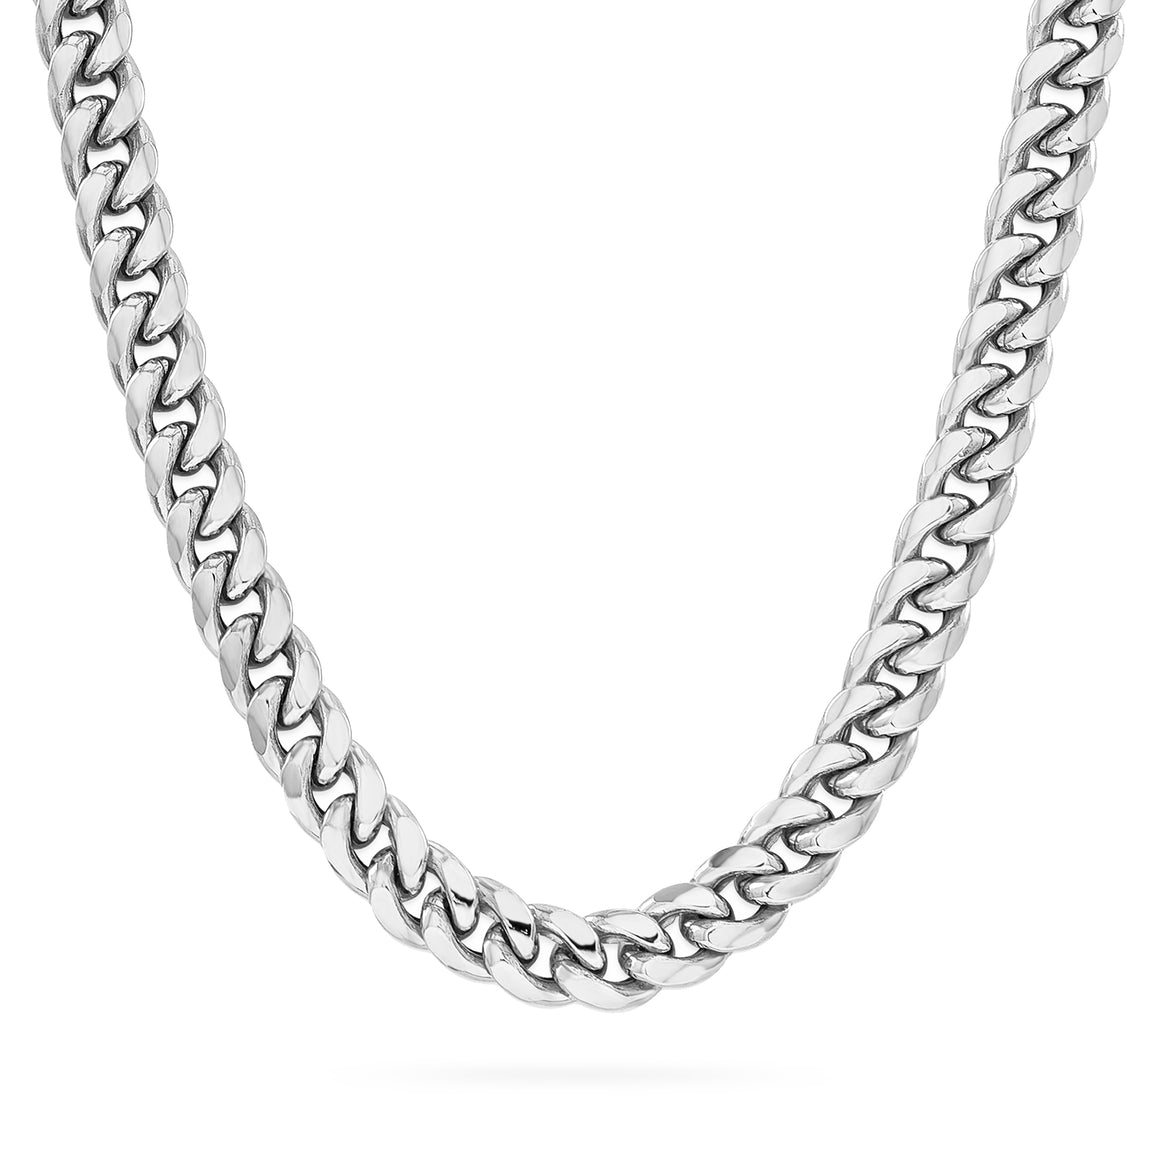 7mm Cuban Link Chain, Silver